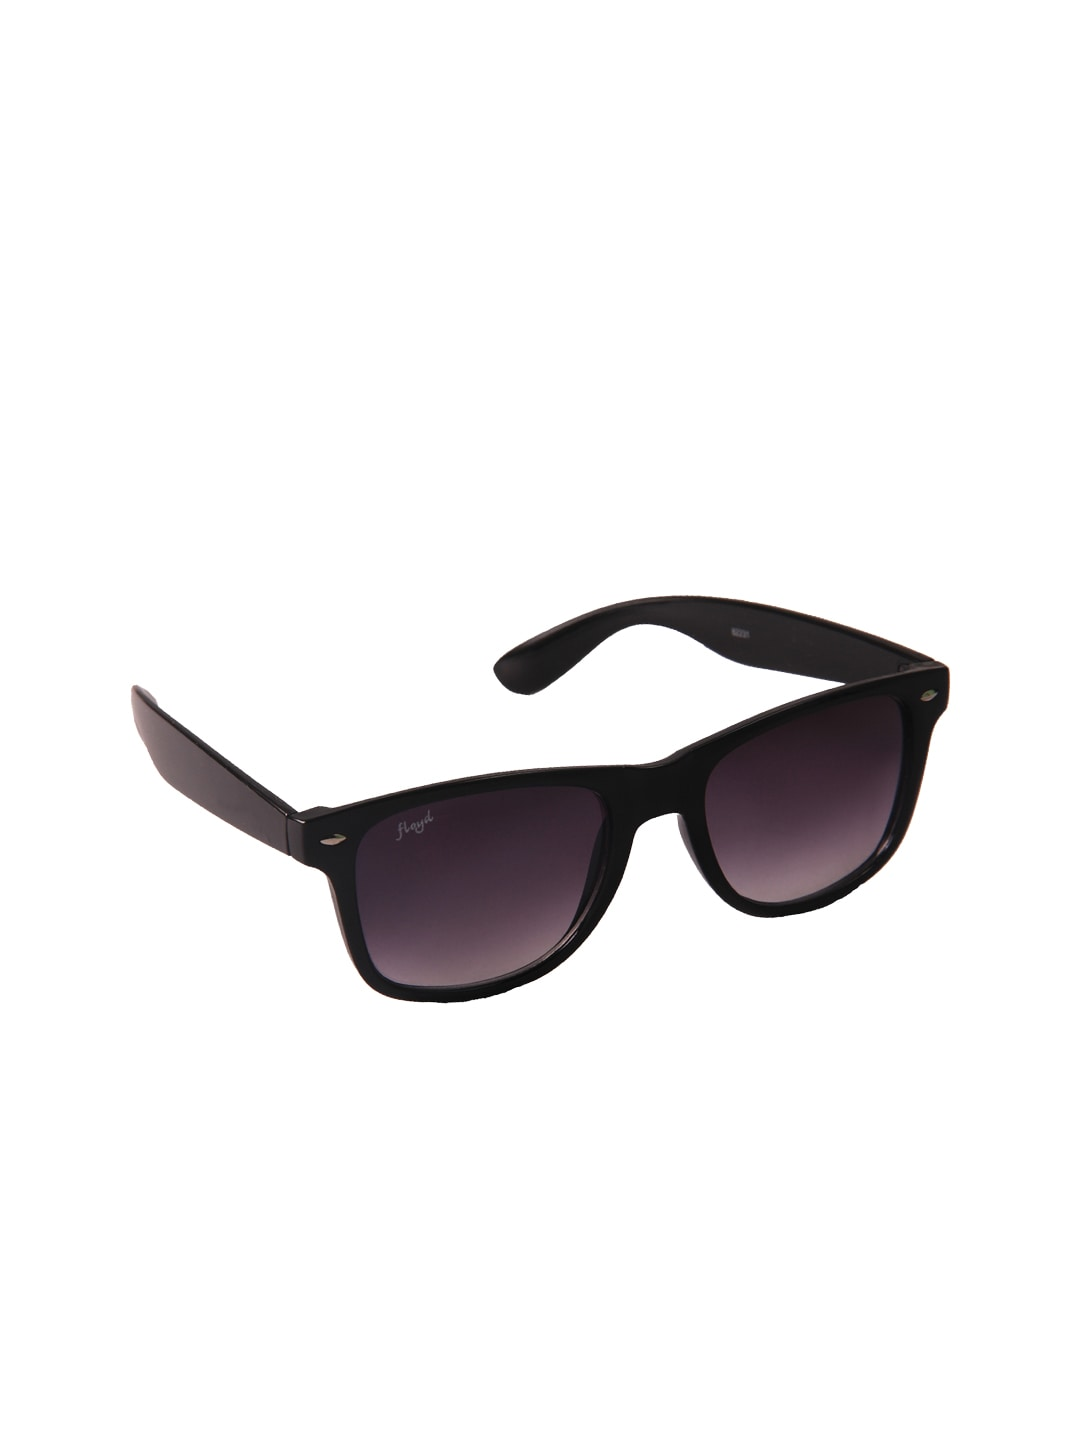 S Sunglasses  sunglasses for women women s sunglasses online